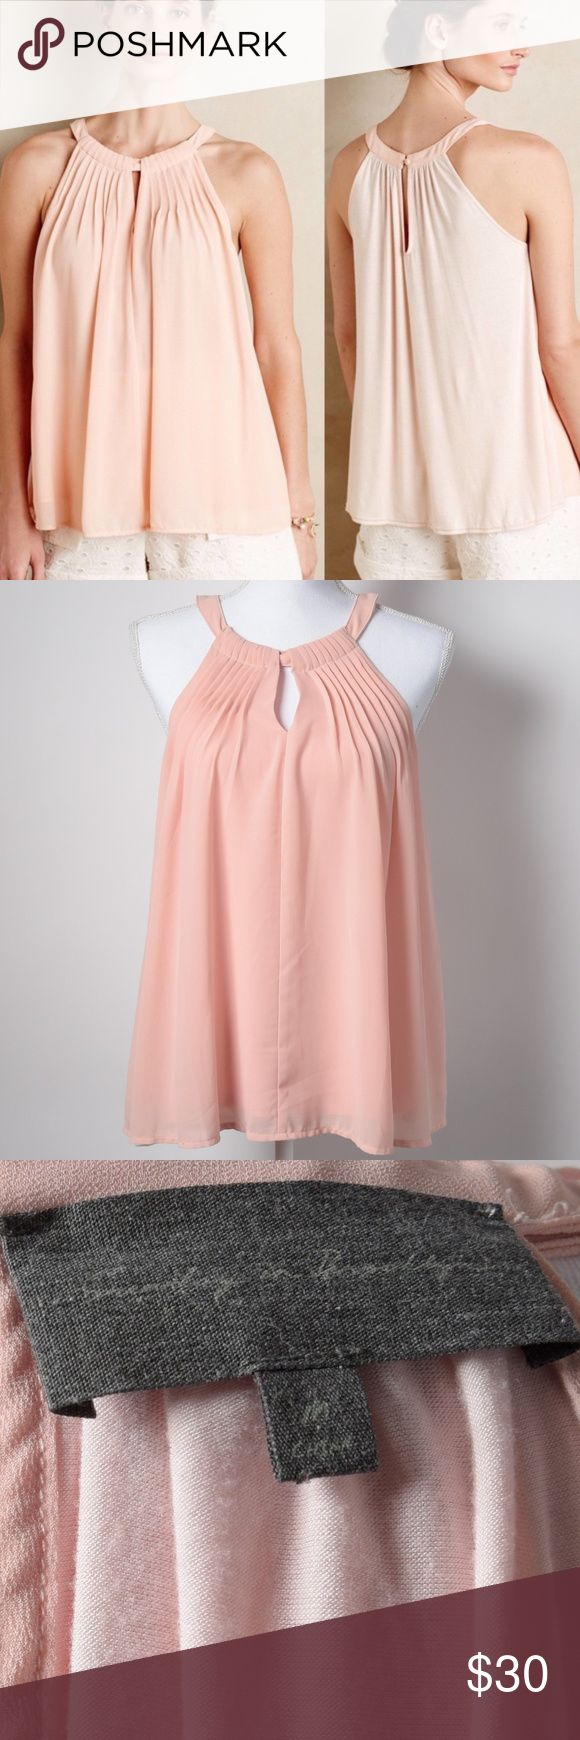 "Anthropologie Sunday in Brooklyn Pleated Pink Top Sunday in Brooklyn by Anthropologie tank top in a blush pink/peach color, perfect for spring and summer. The front is a flowy chiffon polyester with pleated details, and the back is cotton with a keyhole button closure. Size: M  Measurements (approximate) Armpit to armpit: 20"" Length: 27"" Anthropologie Tops Tank Tops"